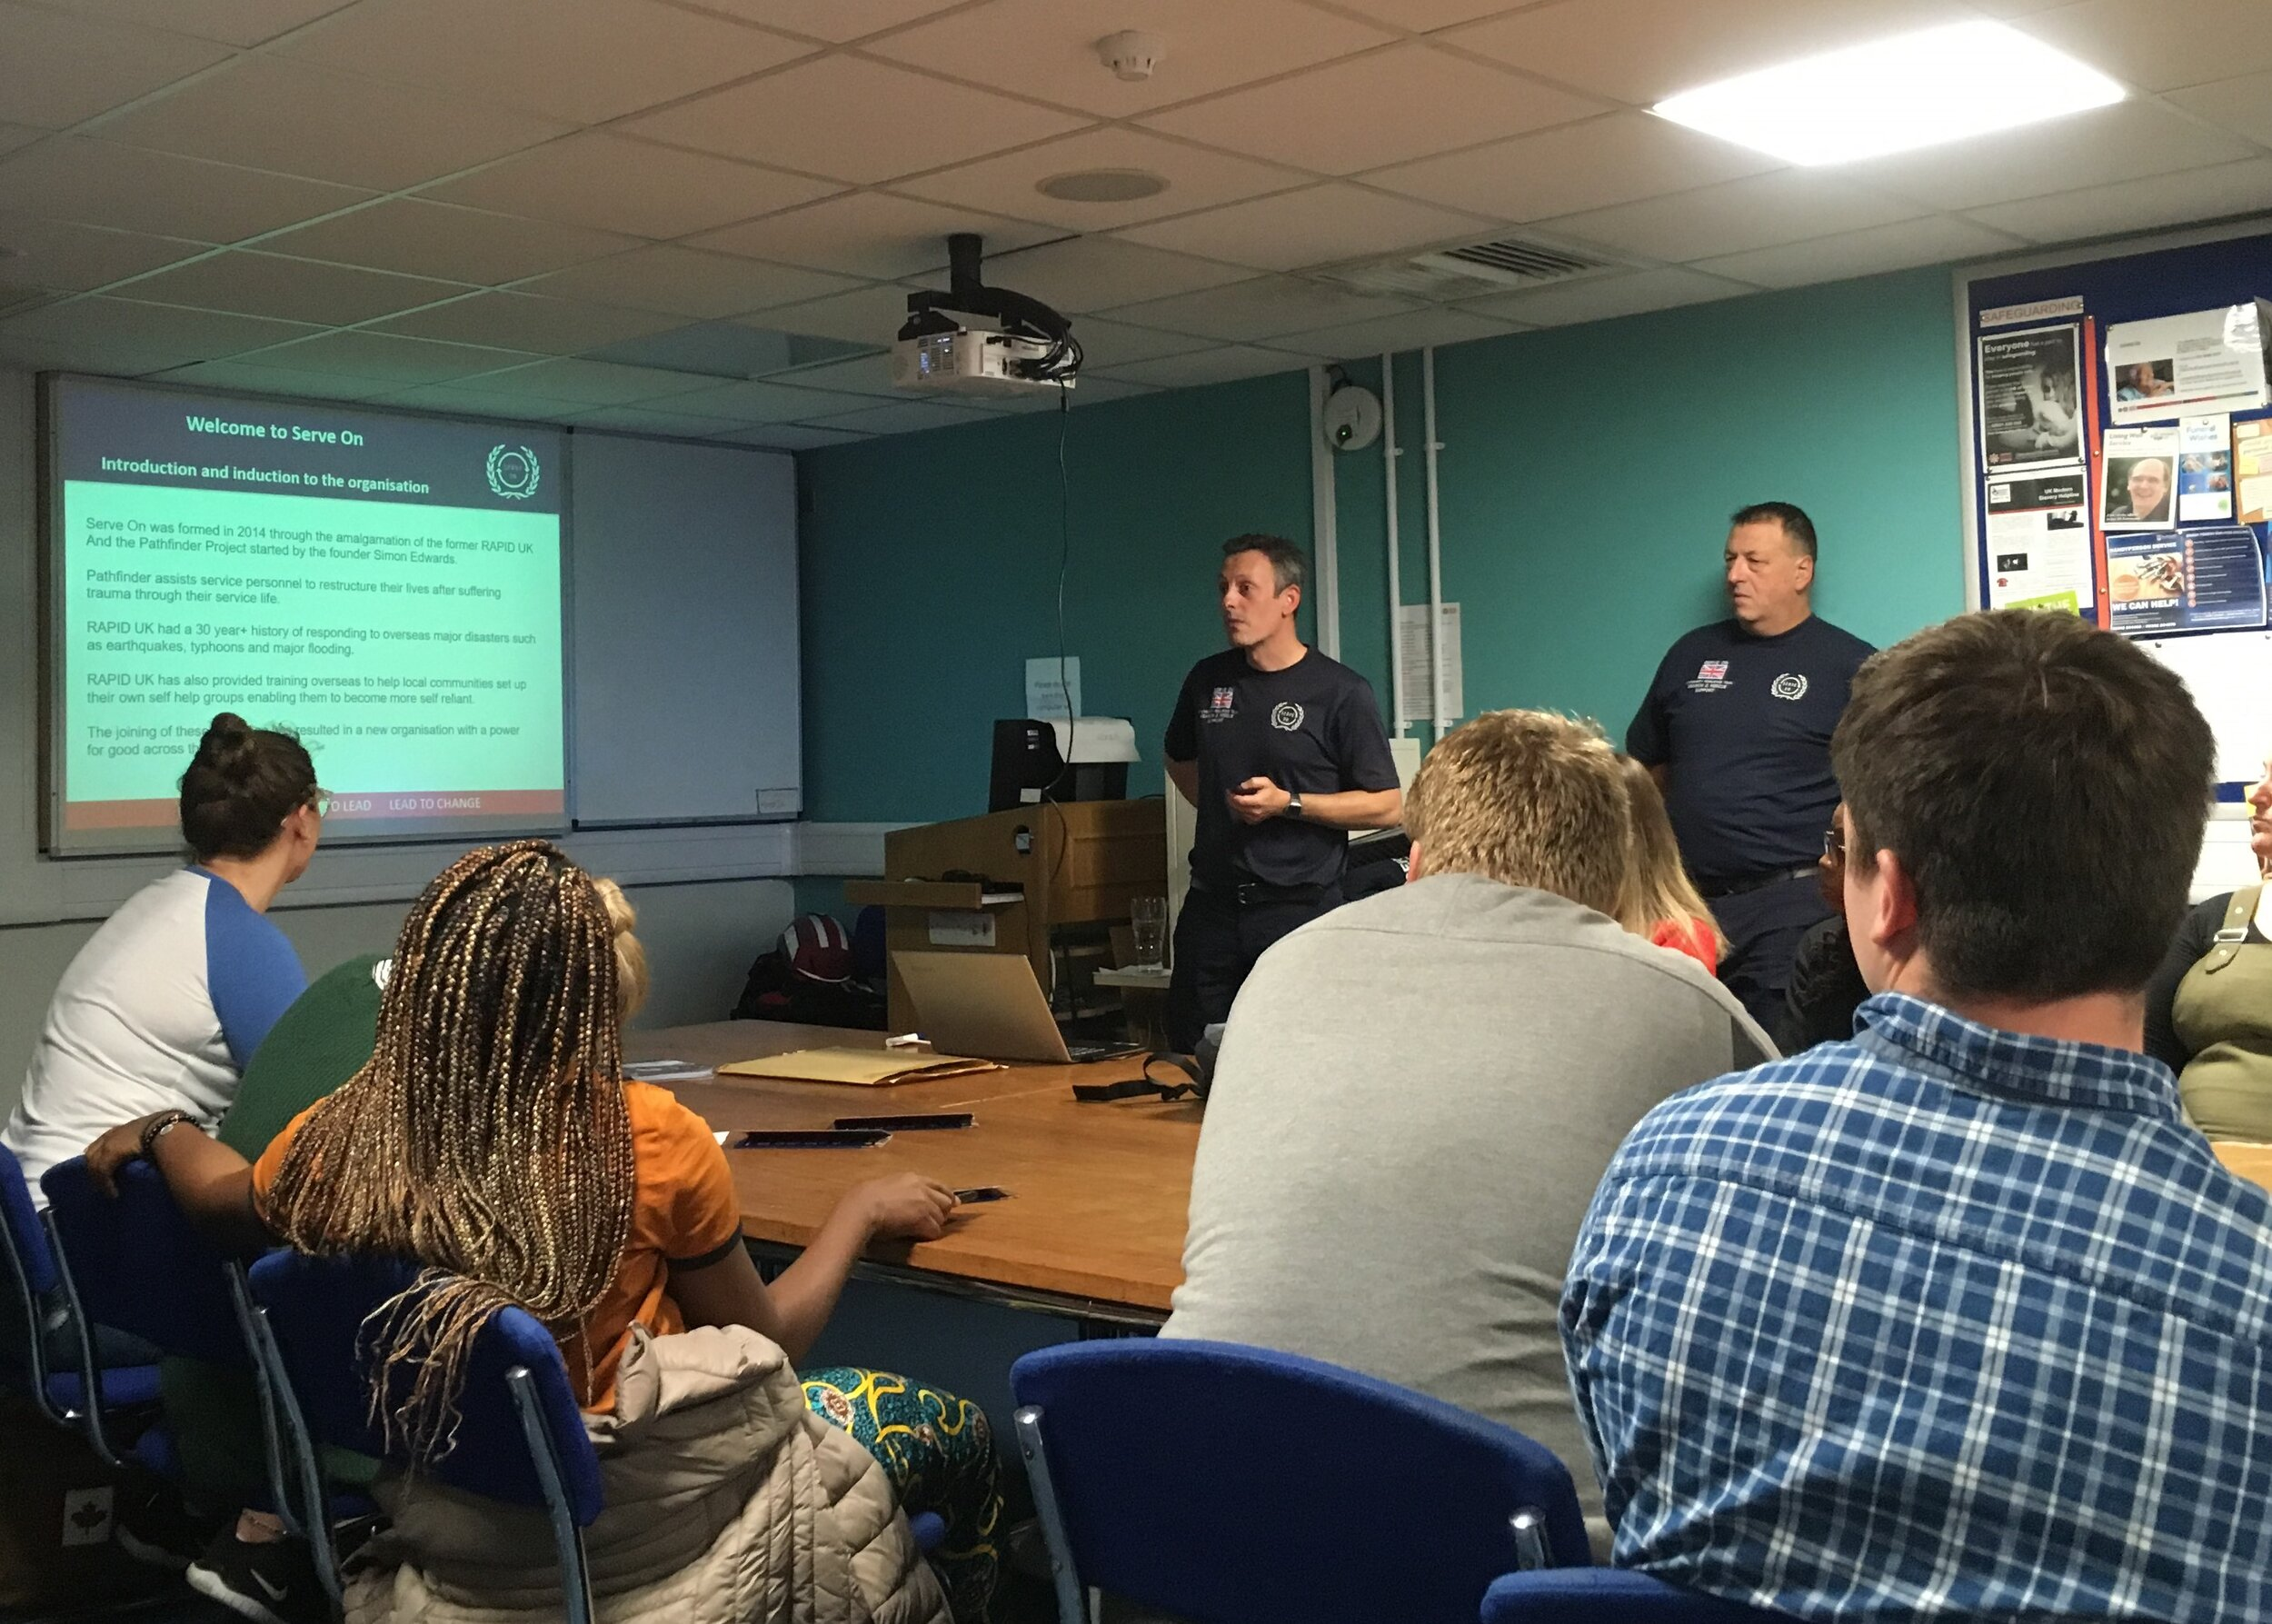 Portsmouth Community Resilience Team leader Paul and instructor Kev explain to would-be recruits how they will be able to help their community, in support of the emergency services, as part of the Serve On family.